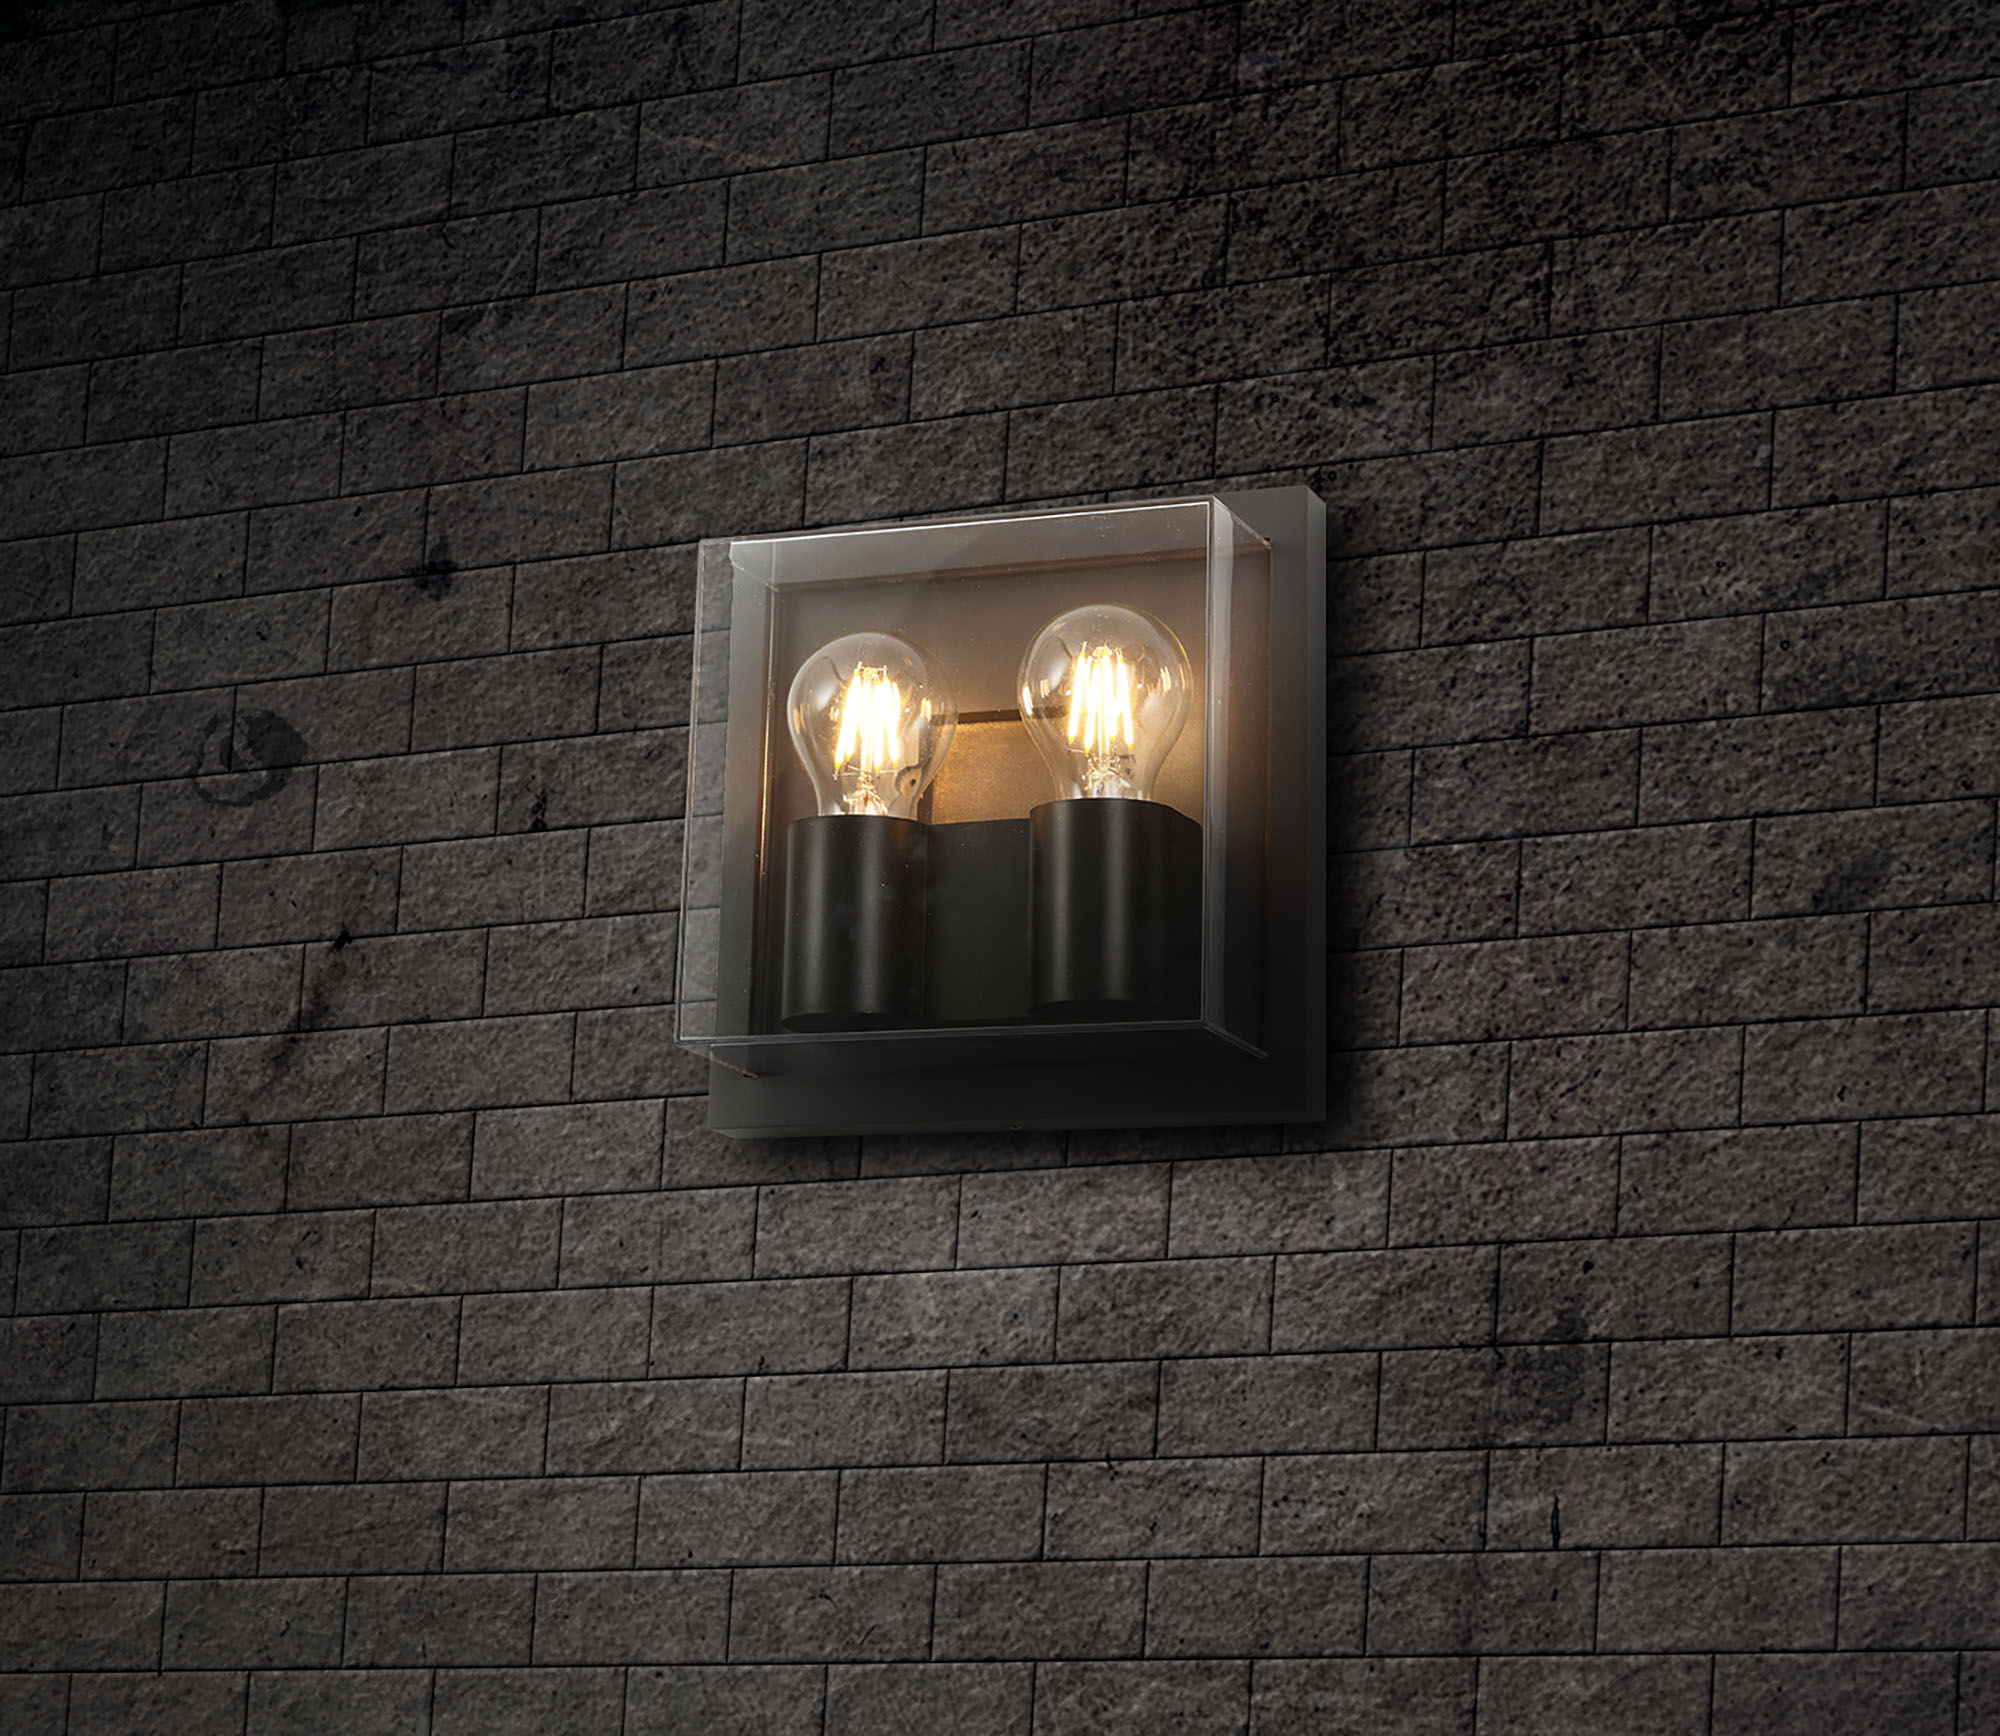 Wall Lamp, 2 x E27, IP65, Anthracite/Clear PC, 2yrs Warranty